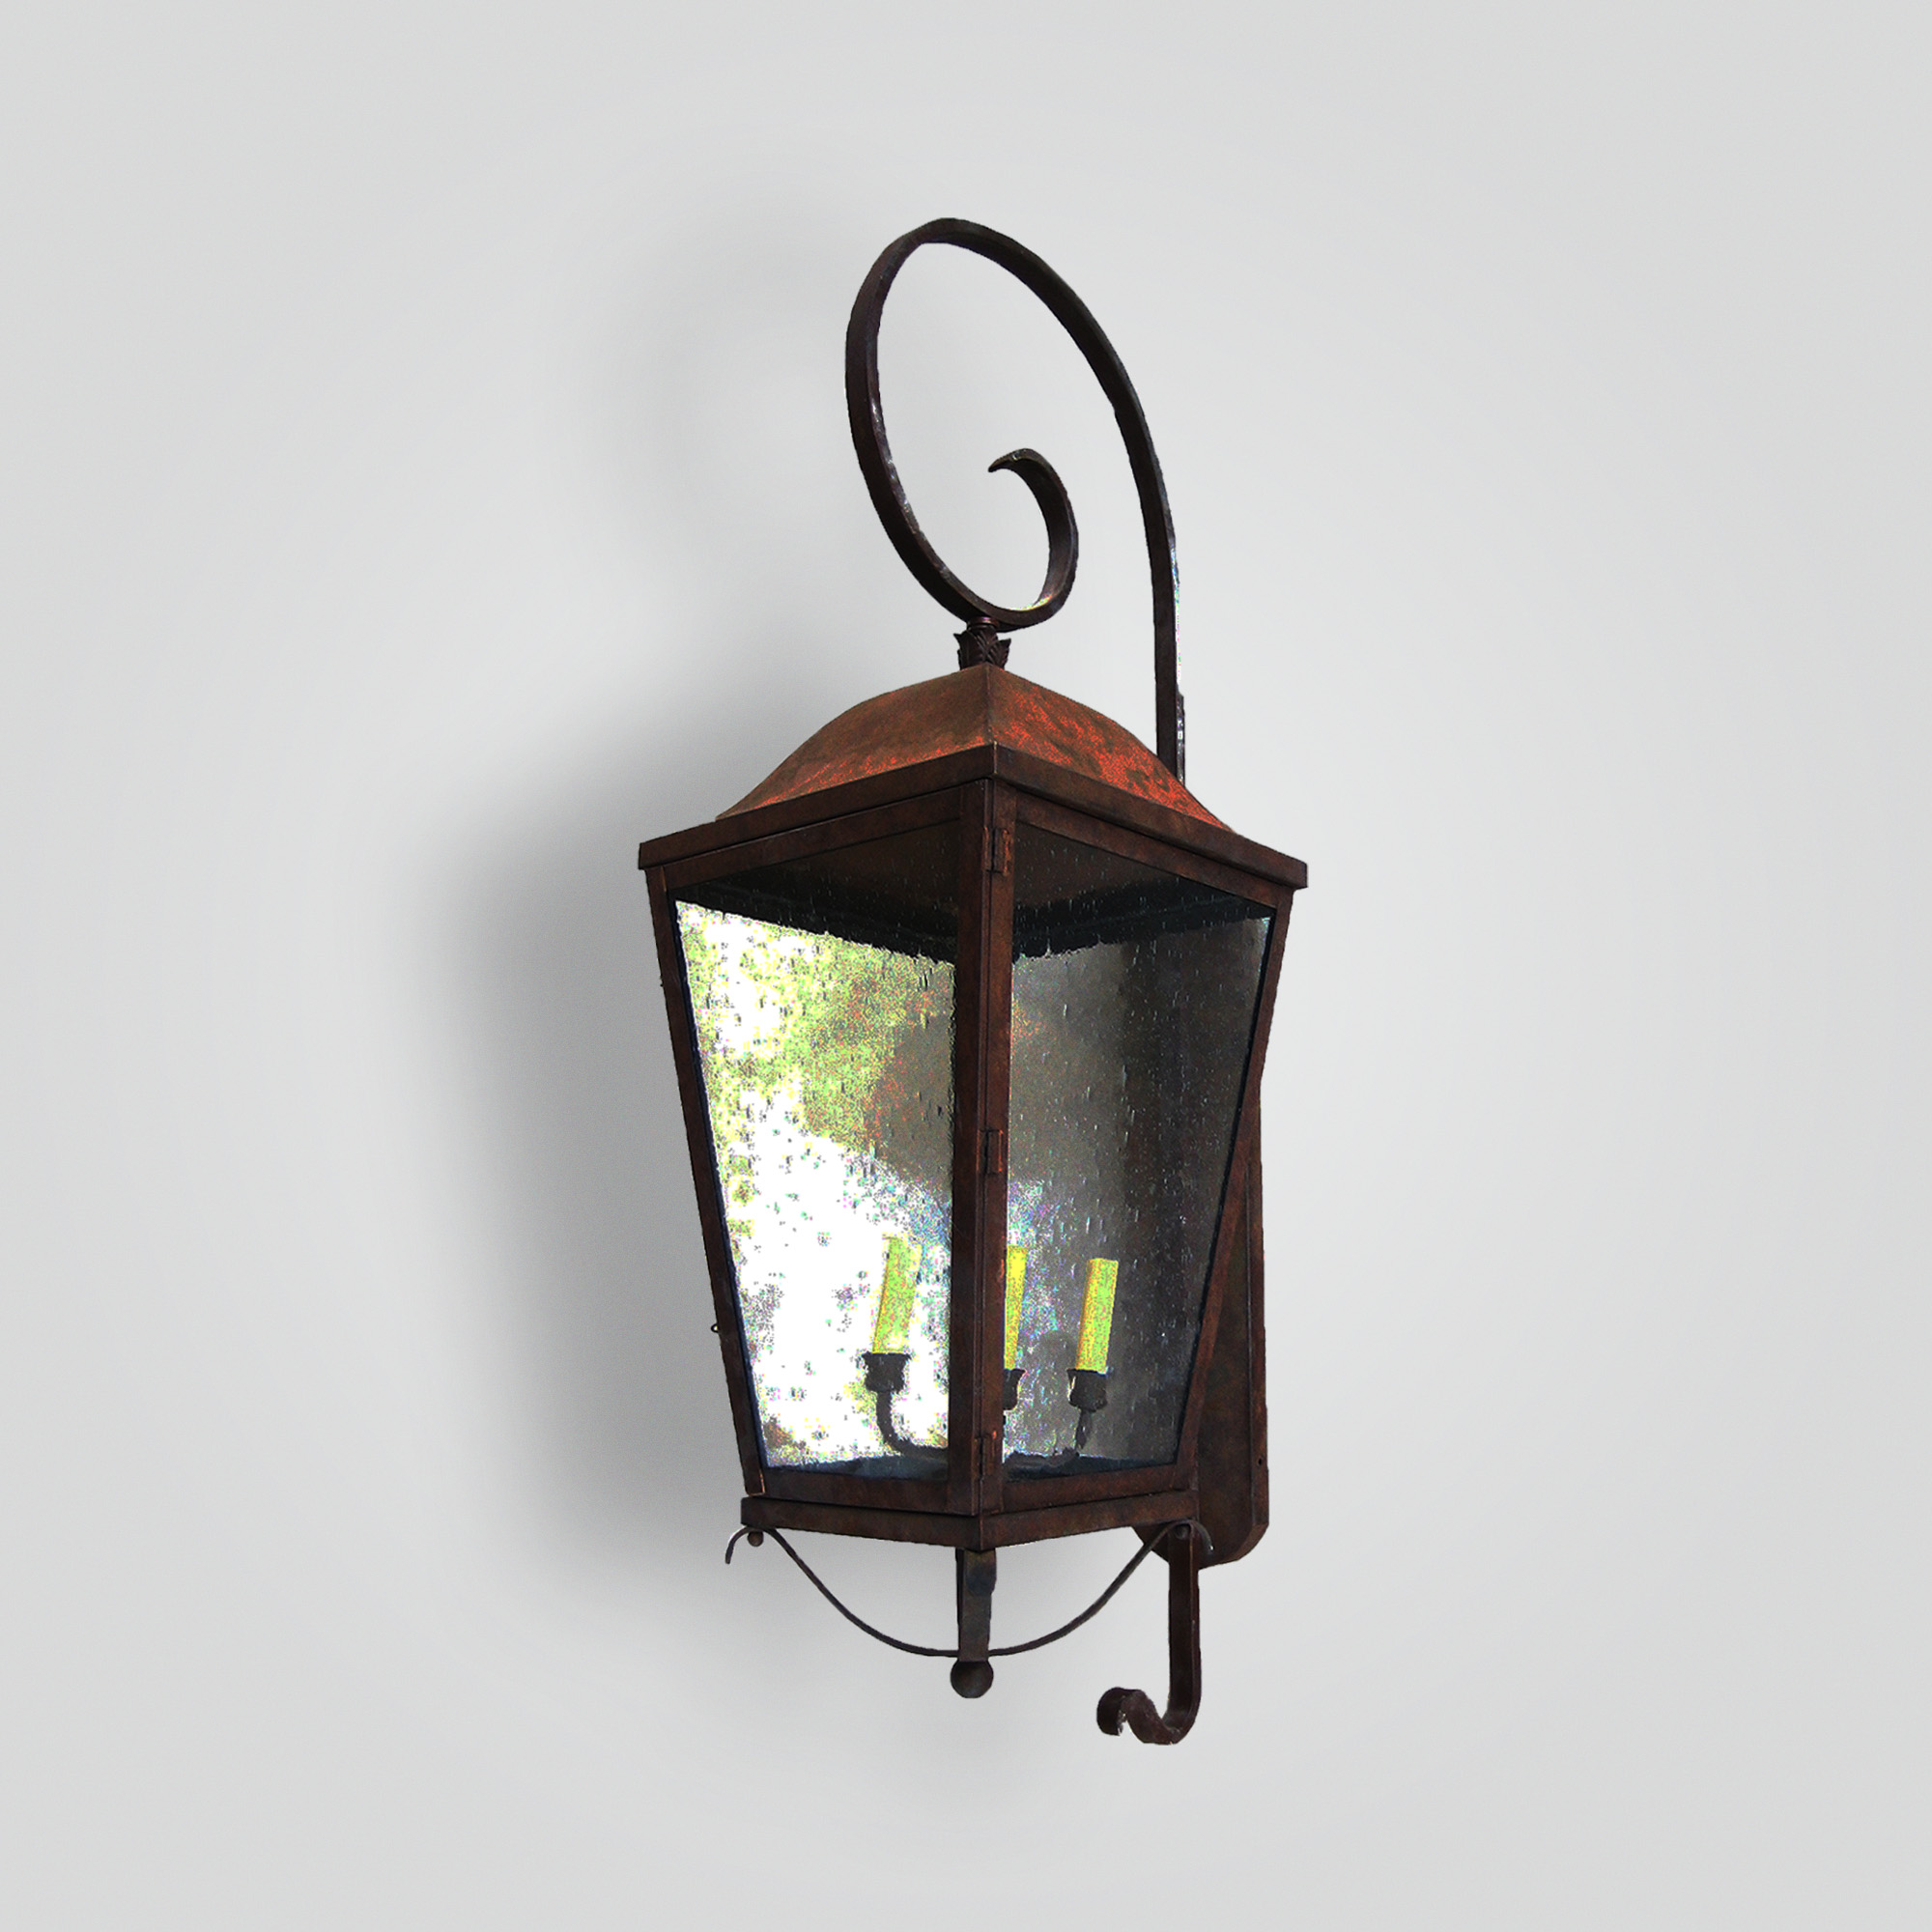 201-cb4-ir-w-ba Simple Lantern On Scrolled Arm – ADG Lighting Collection